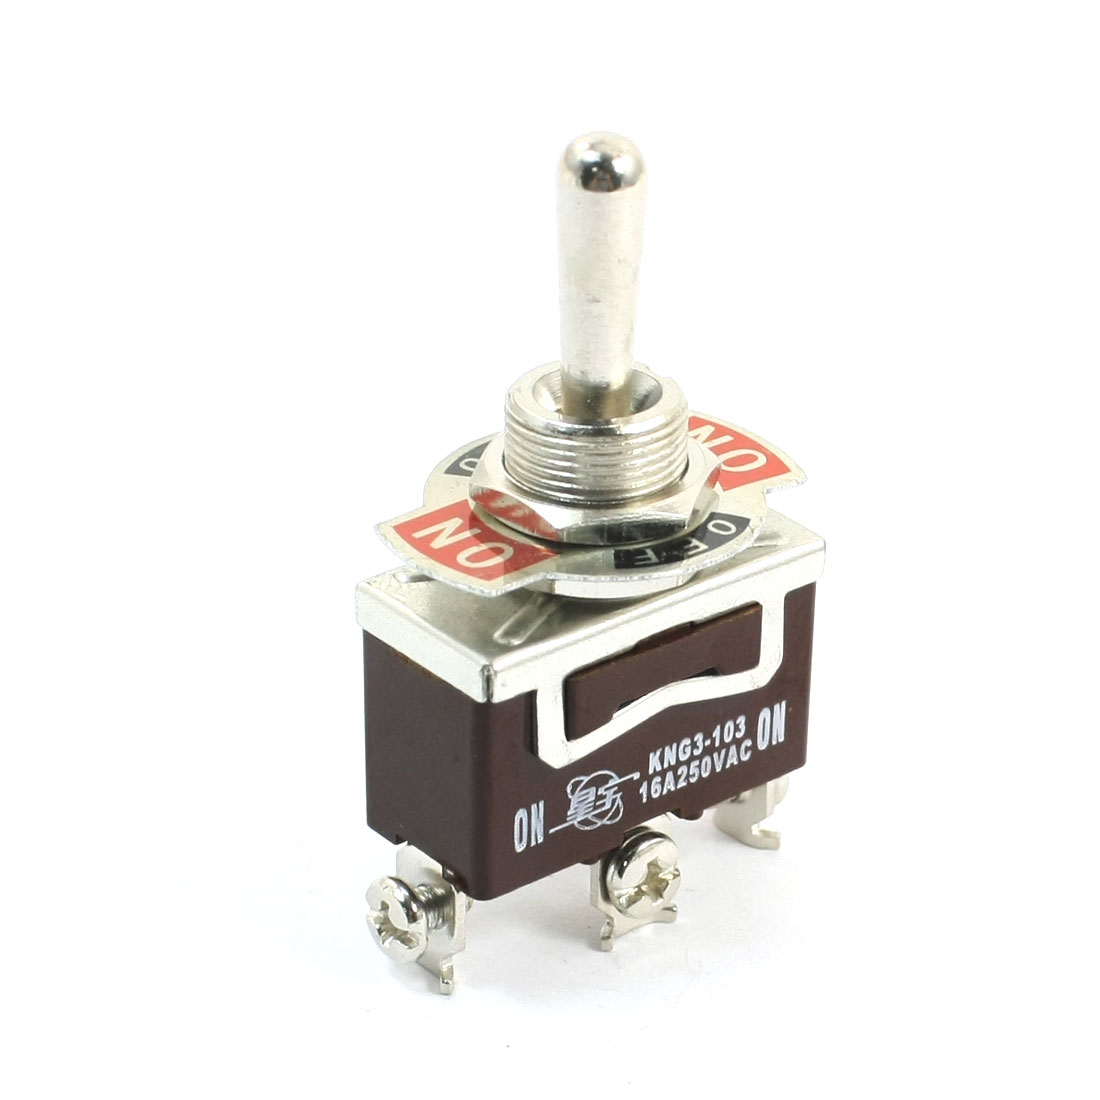 KNG3-103 SPDT 3 Positions 3-Terminals Toggle Switch AC250V 16A